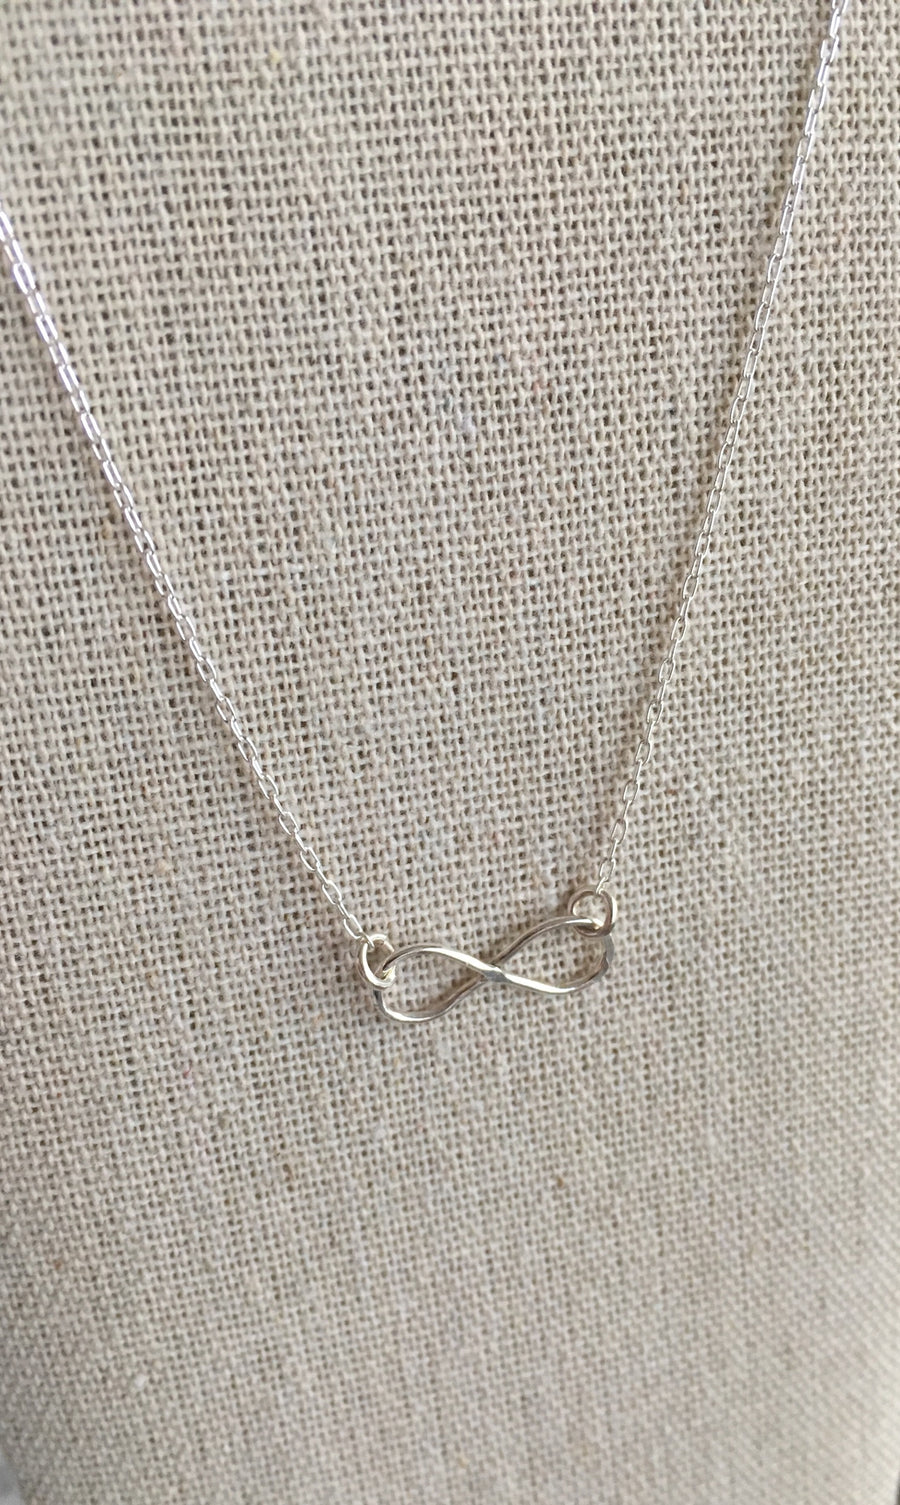 Infinity necklace in sterling silver - ShopTheMakers.com